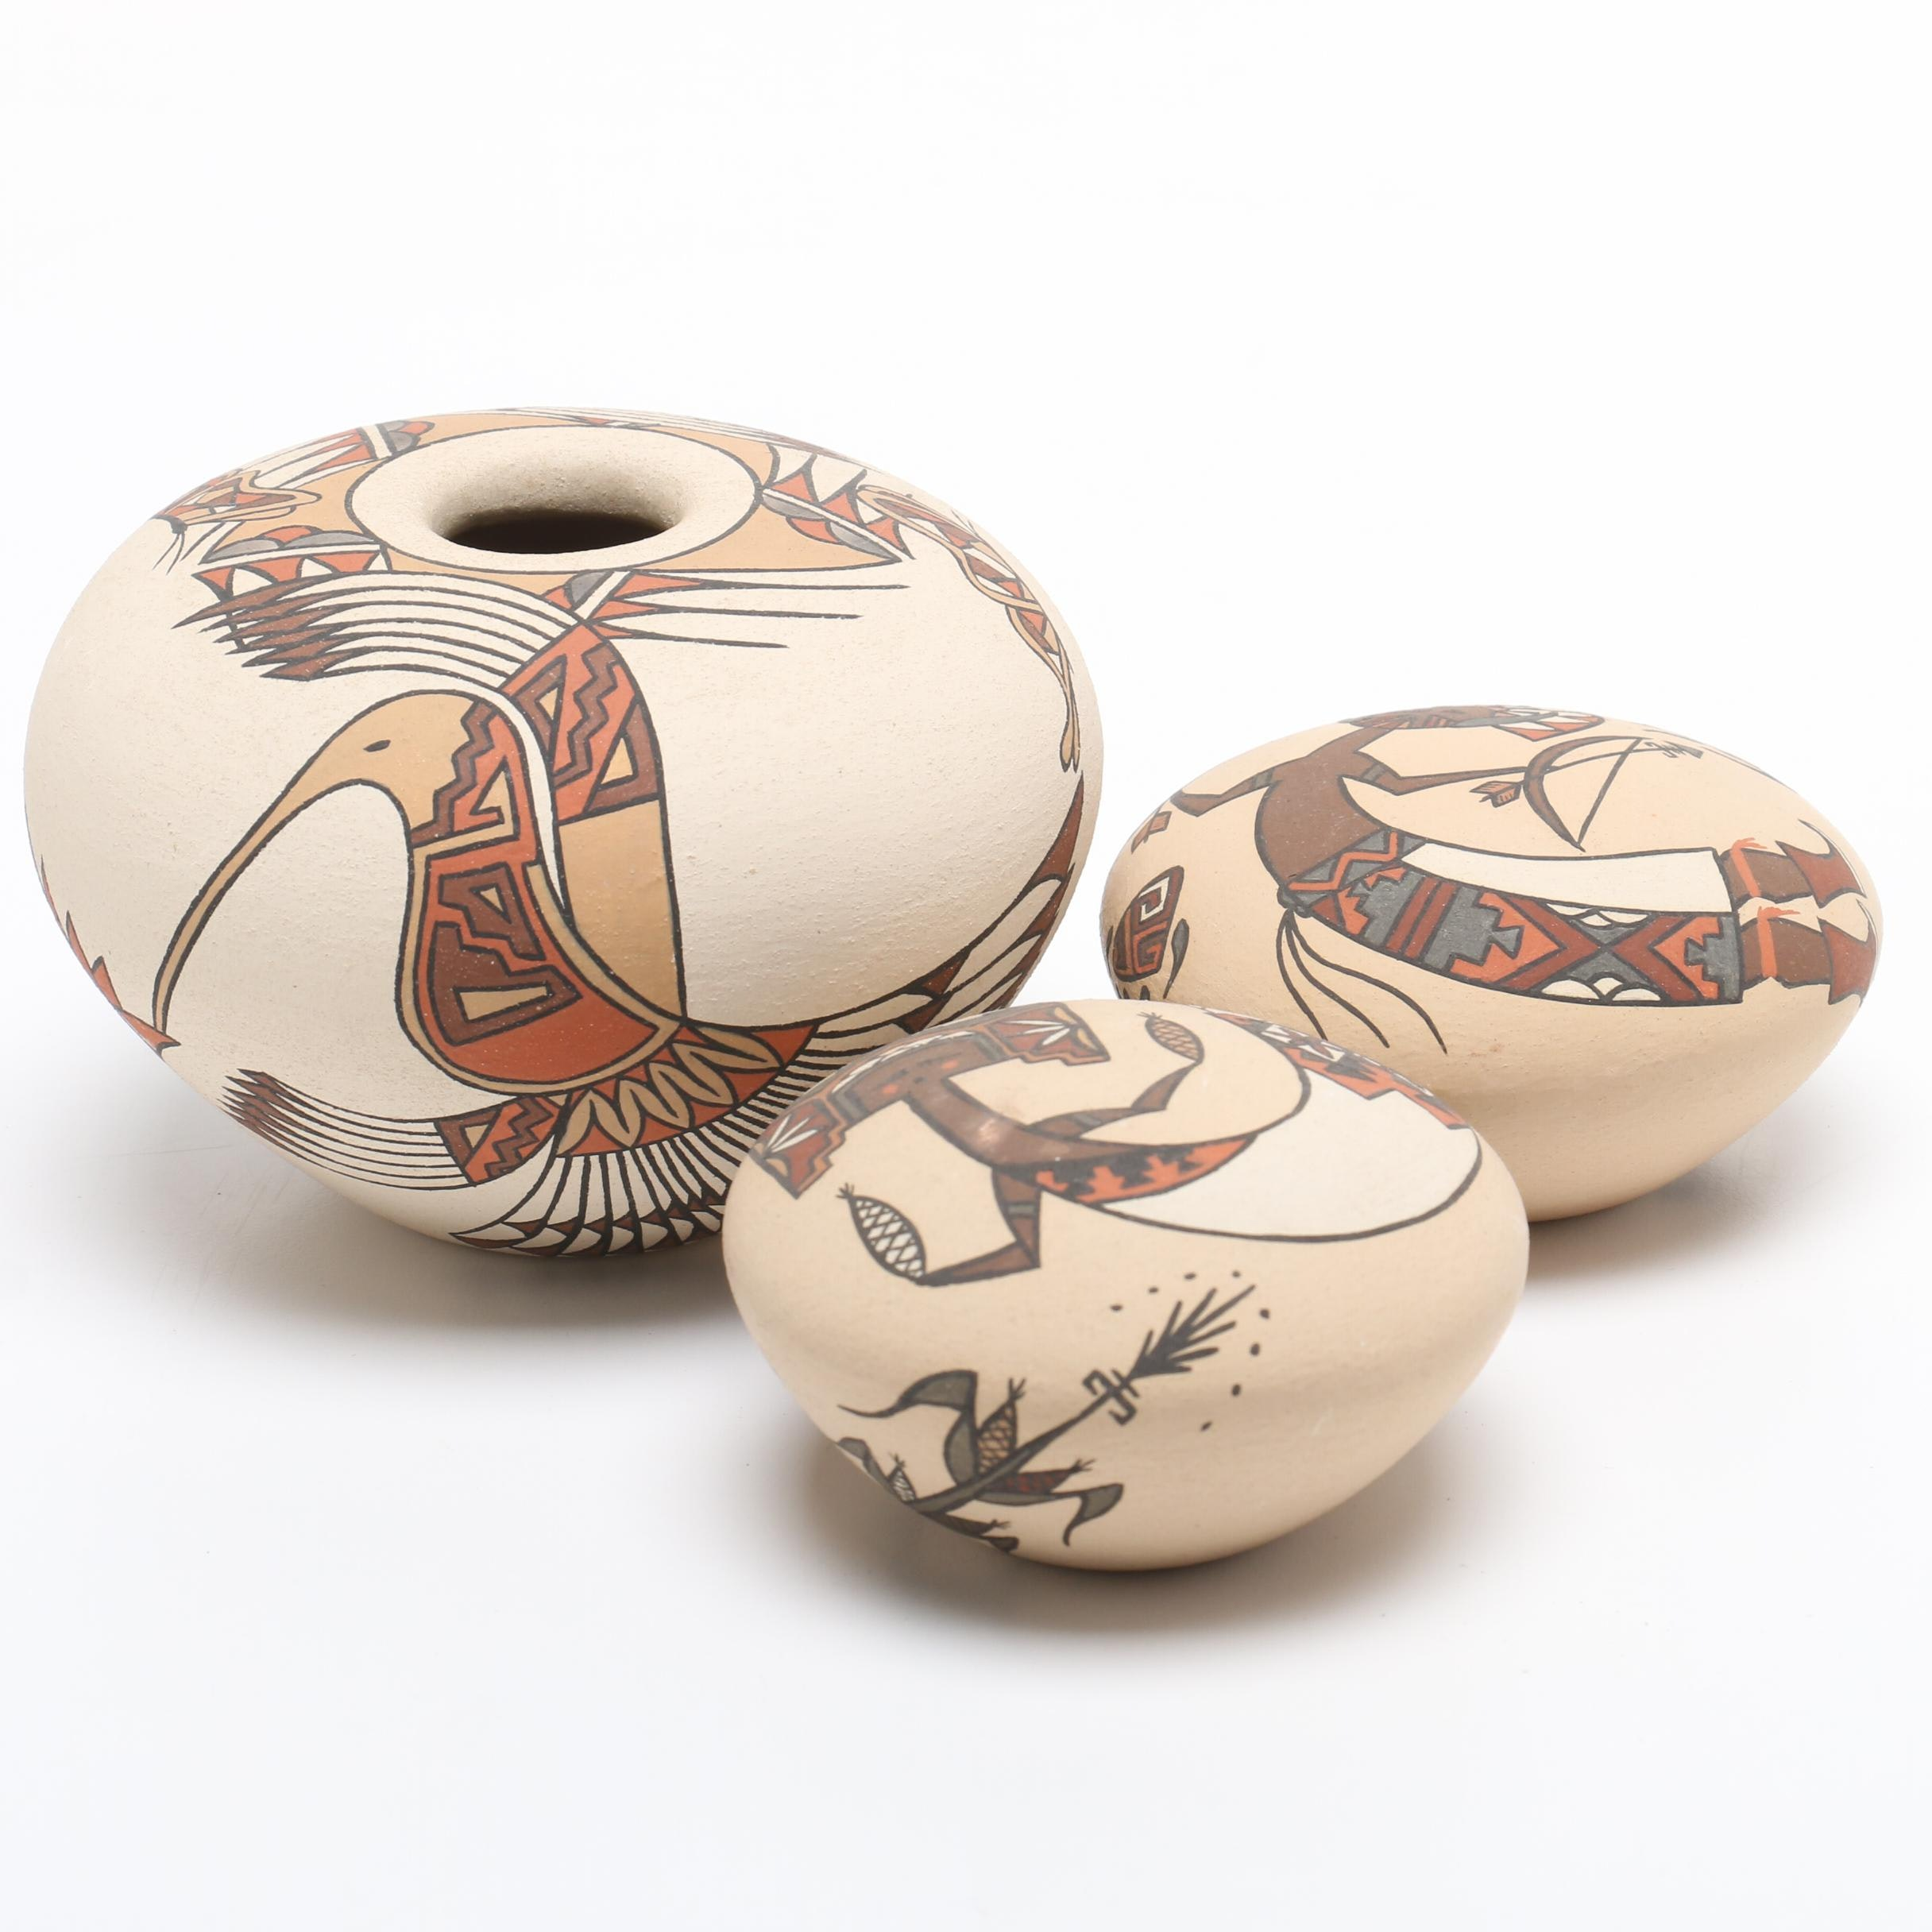 Lois Derek Native American Style Hand Painted Pottery